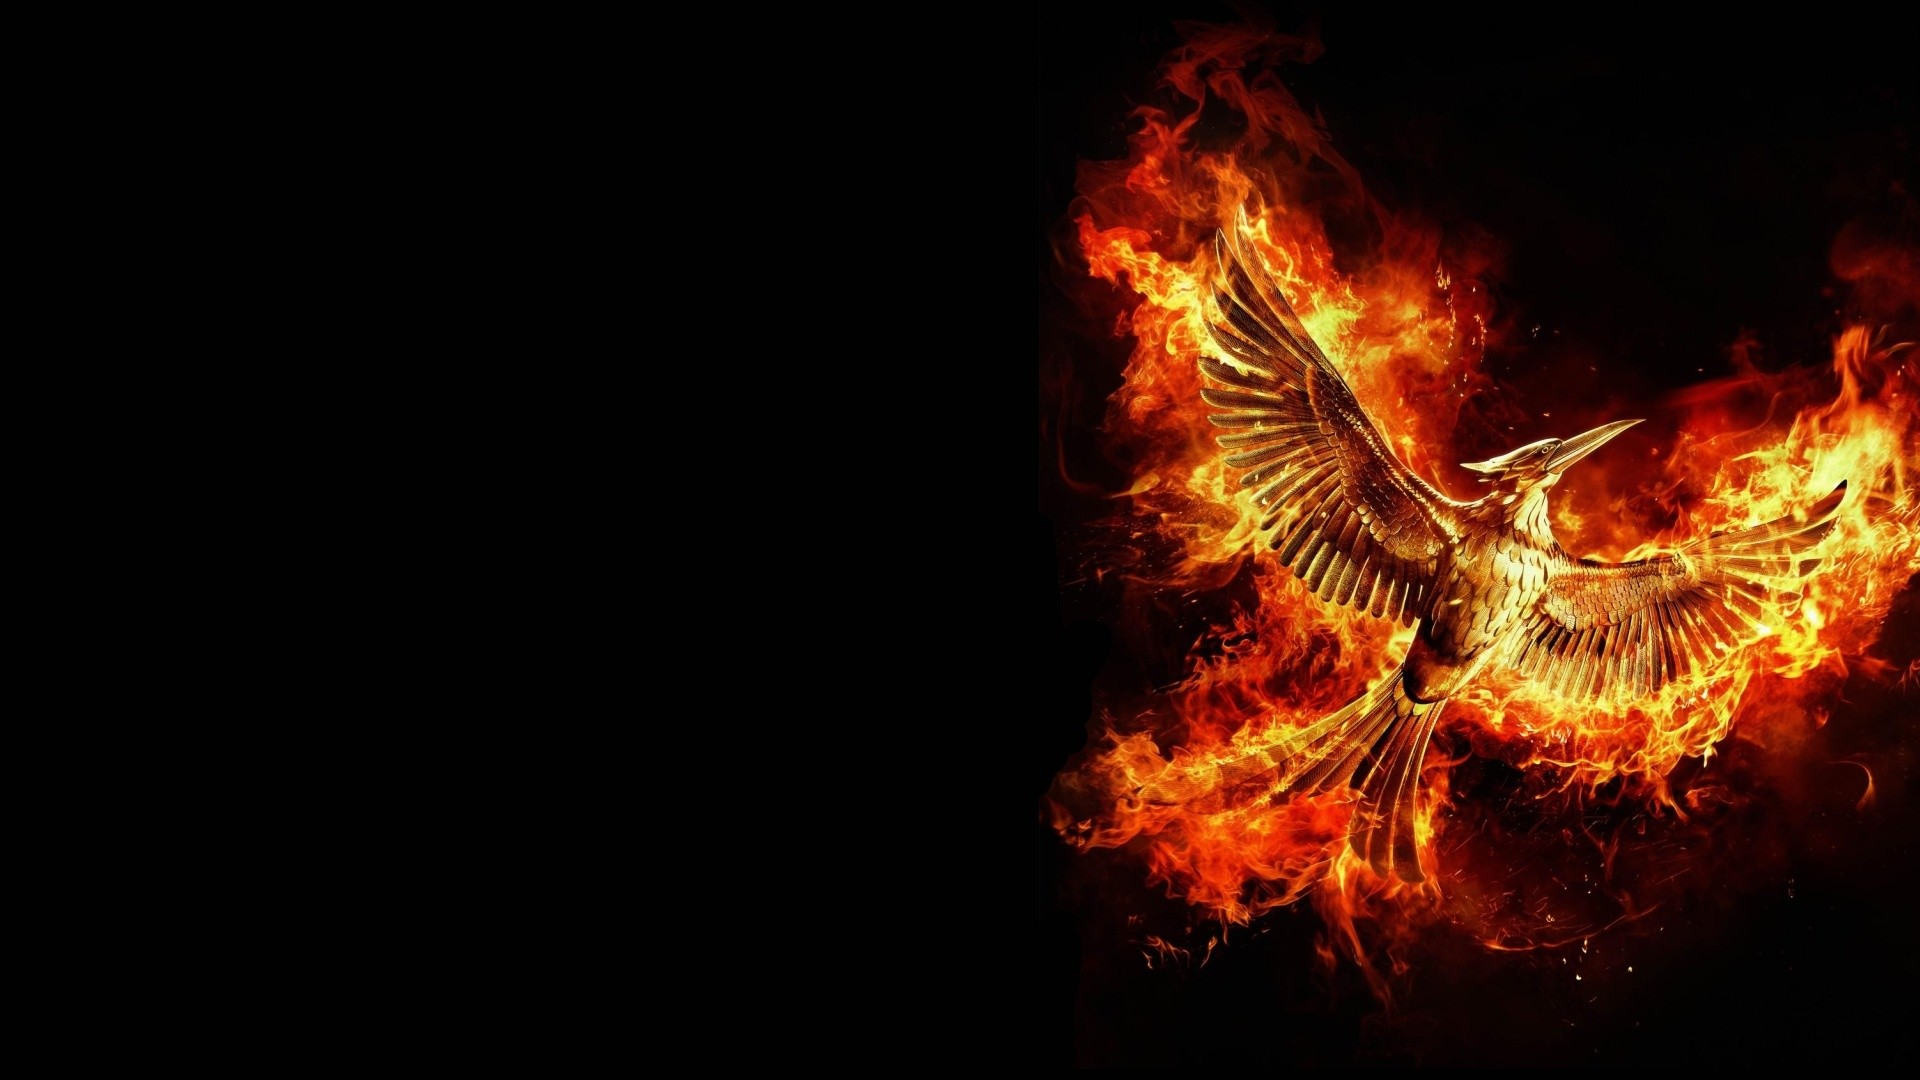 1920x1080 The Hunger Games: Mockingjay Part 2 Download Free Backgrounds HD